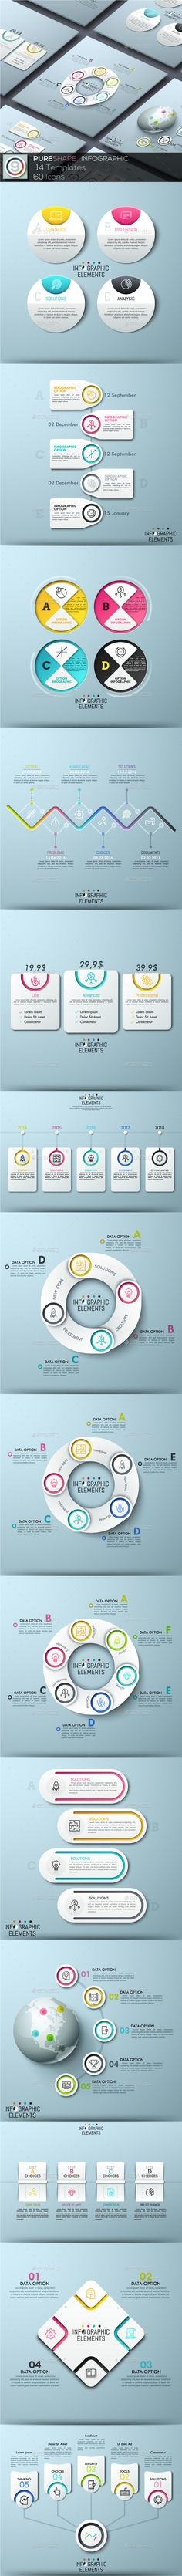 Set 9 by Andrew_Kras Pure Shape Infographic Pack 9 includes 14 templates in futuristic cut style and 60 icons pack in modern colorful style. Infographic Resume, Infographics Design, Strategy Map, Powerpoint Slide Designs, Web Design, Concert Flyer, Data Visualization, Presentation Templates, Business Cards